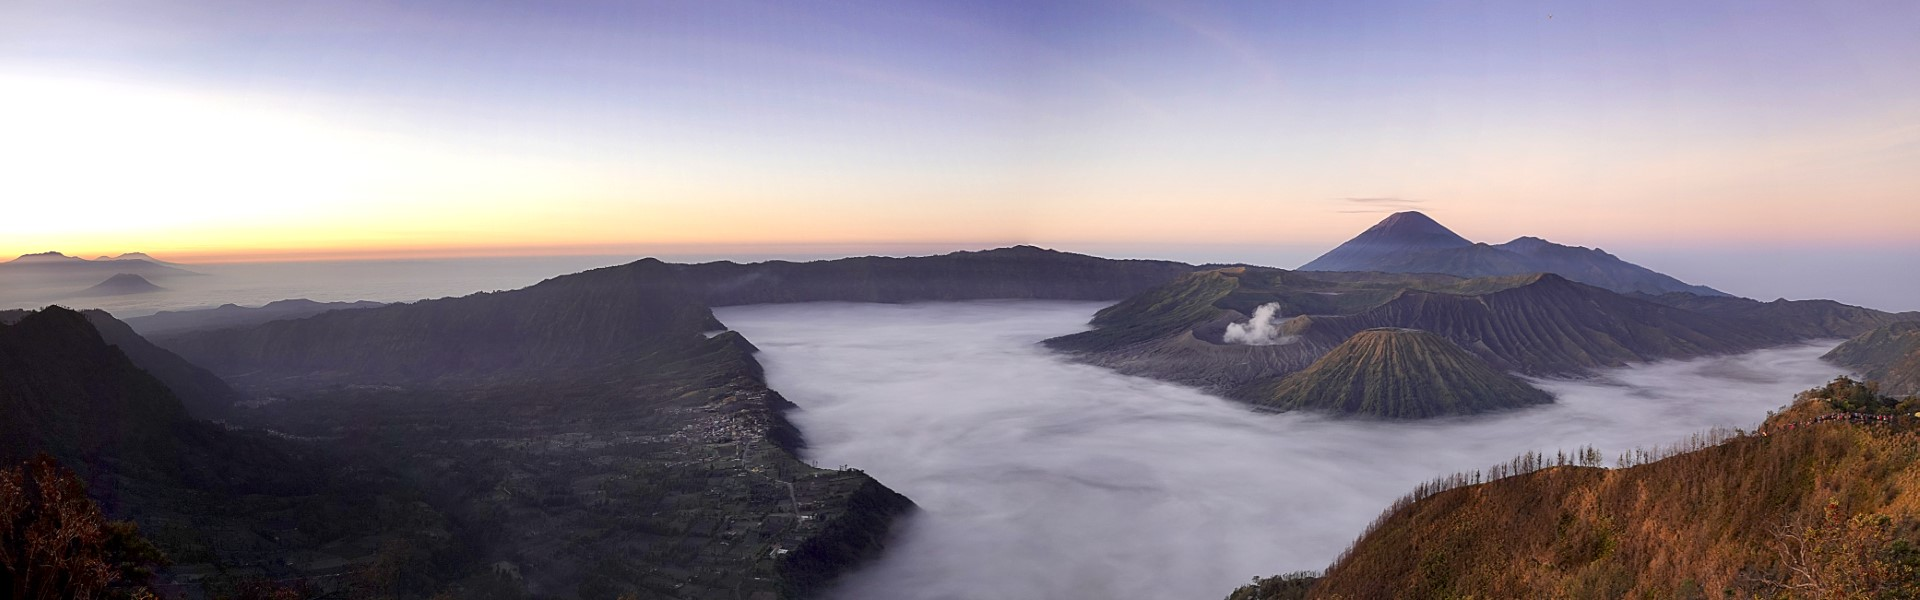 The Bromo Observation Deck, Indonesia